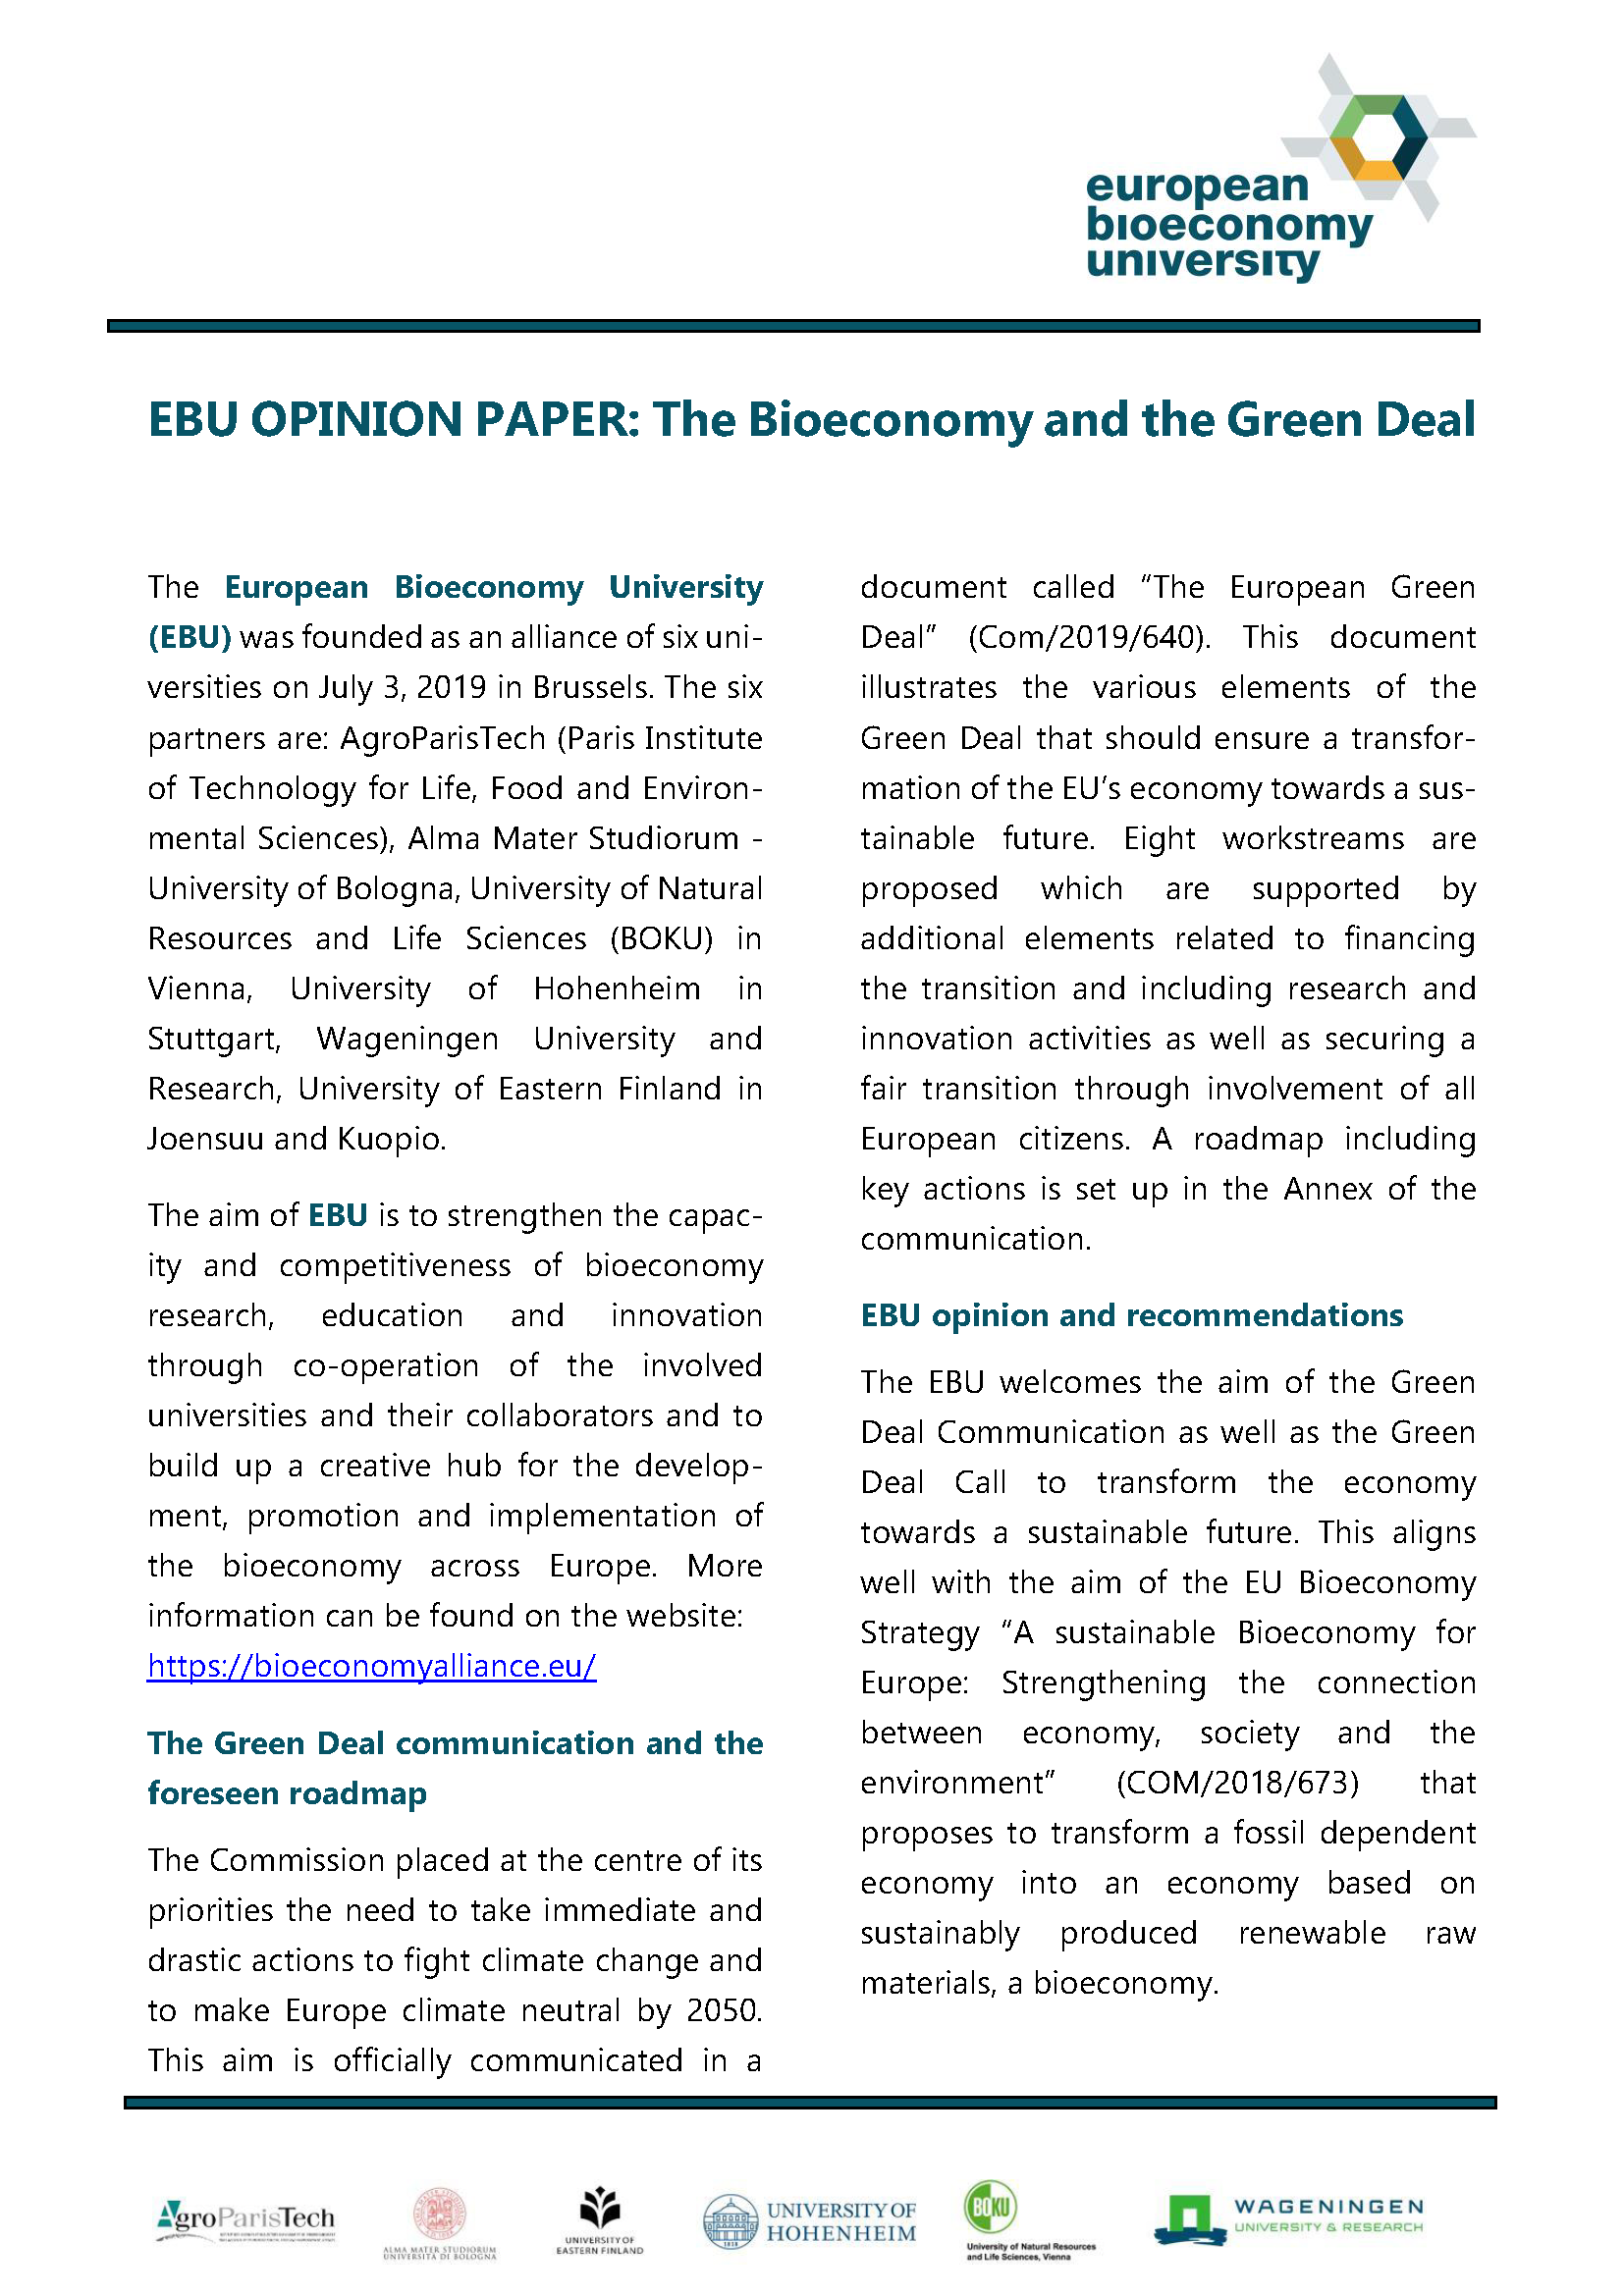 EBU Opinion Paper: The Bioeconomy and the Green Deal